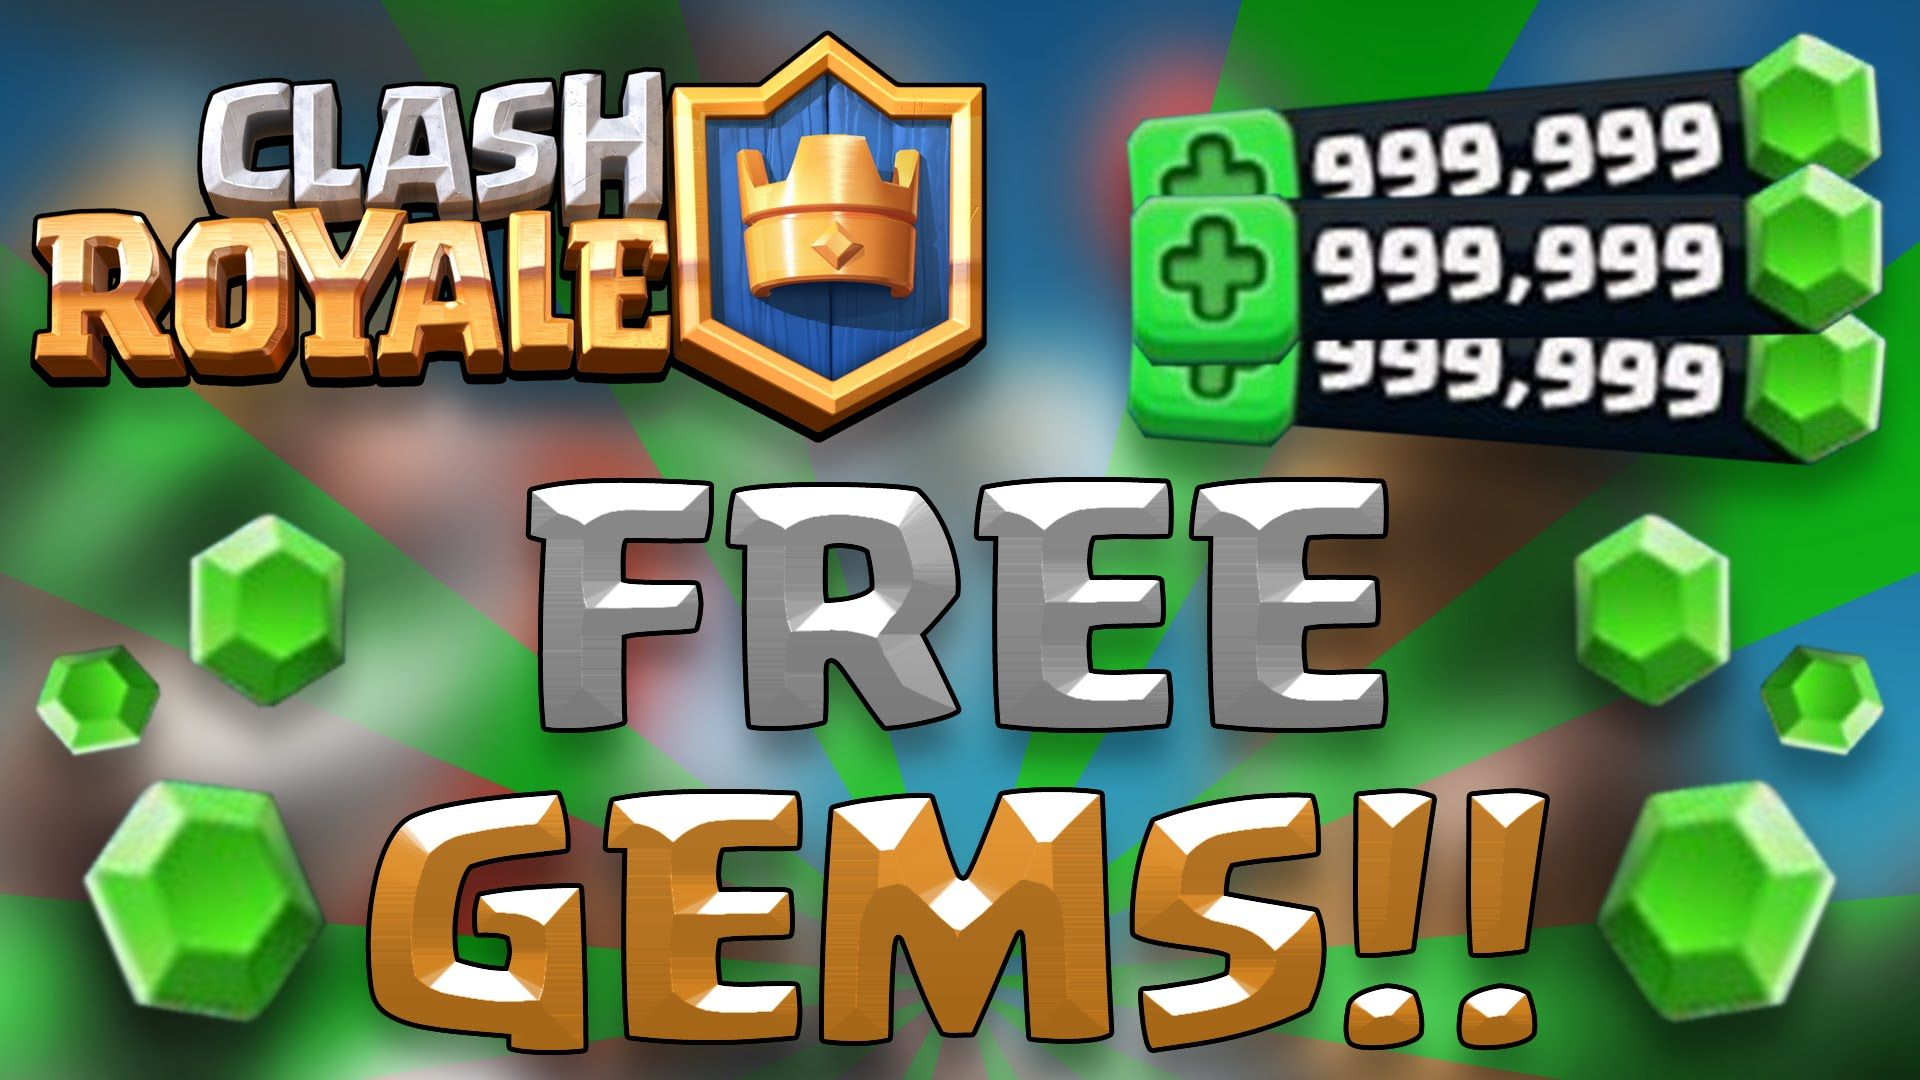 Get Clash Royale Unlimited Gems For Free! Working [December 2020]